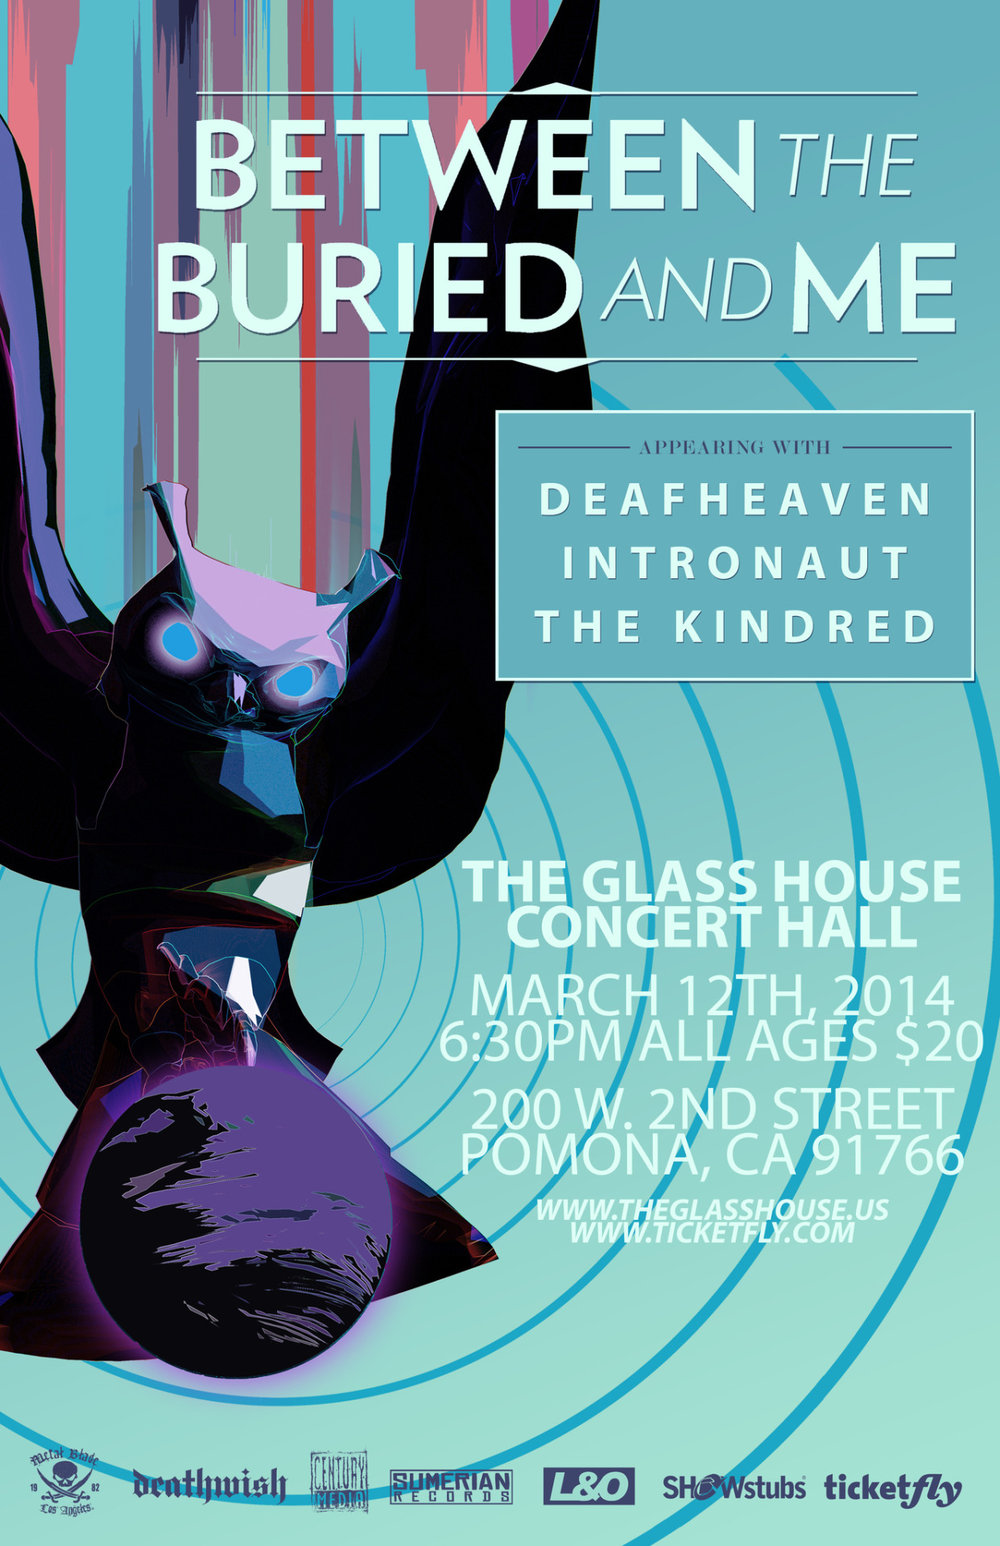 Reserved tickets as soon as they went on sale at noon today for the  DEAFHEAVEN  show in March 2014 at the Glasshouse! Stoked!